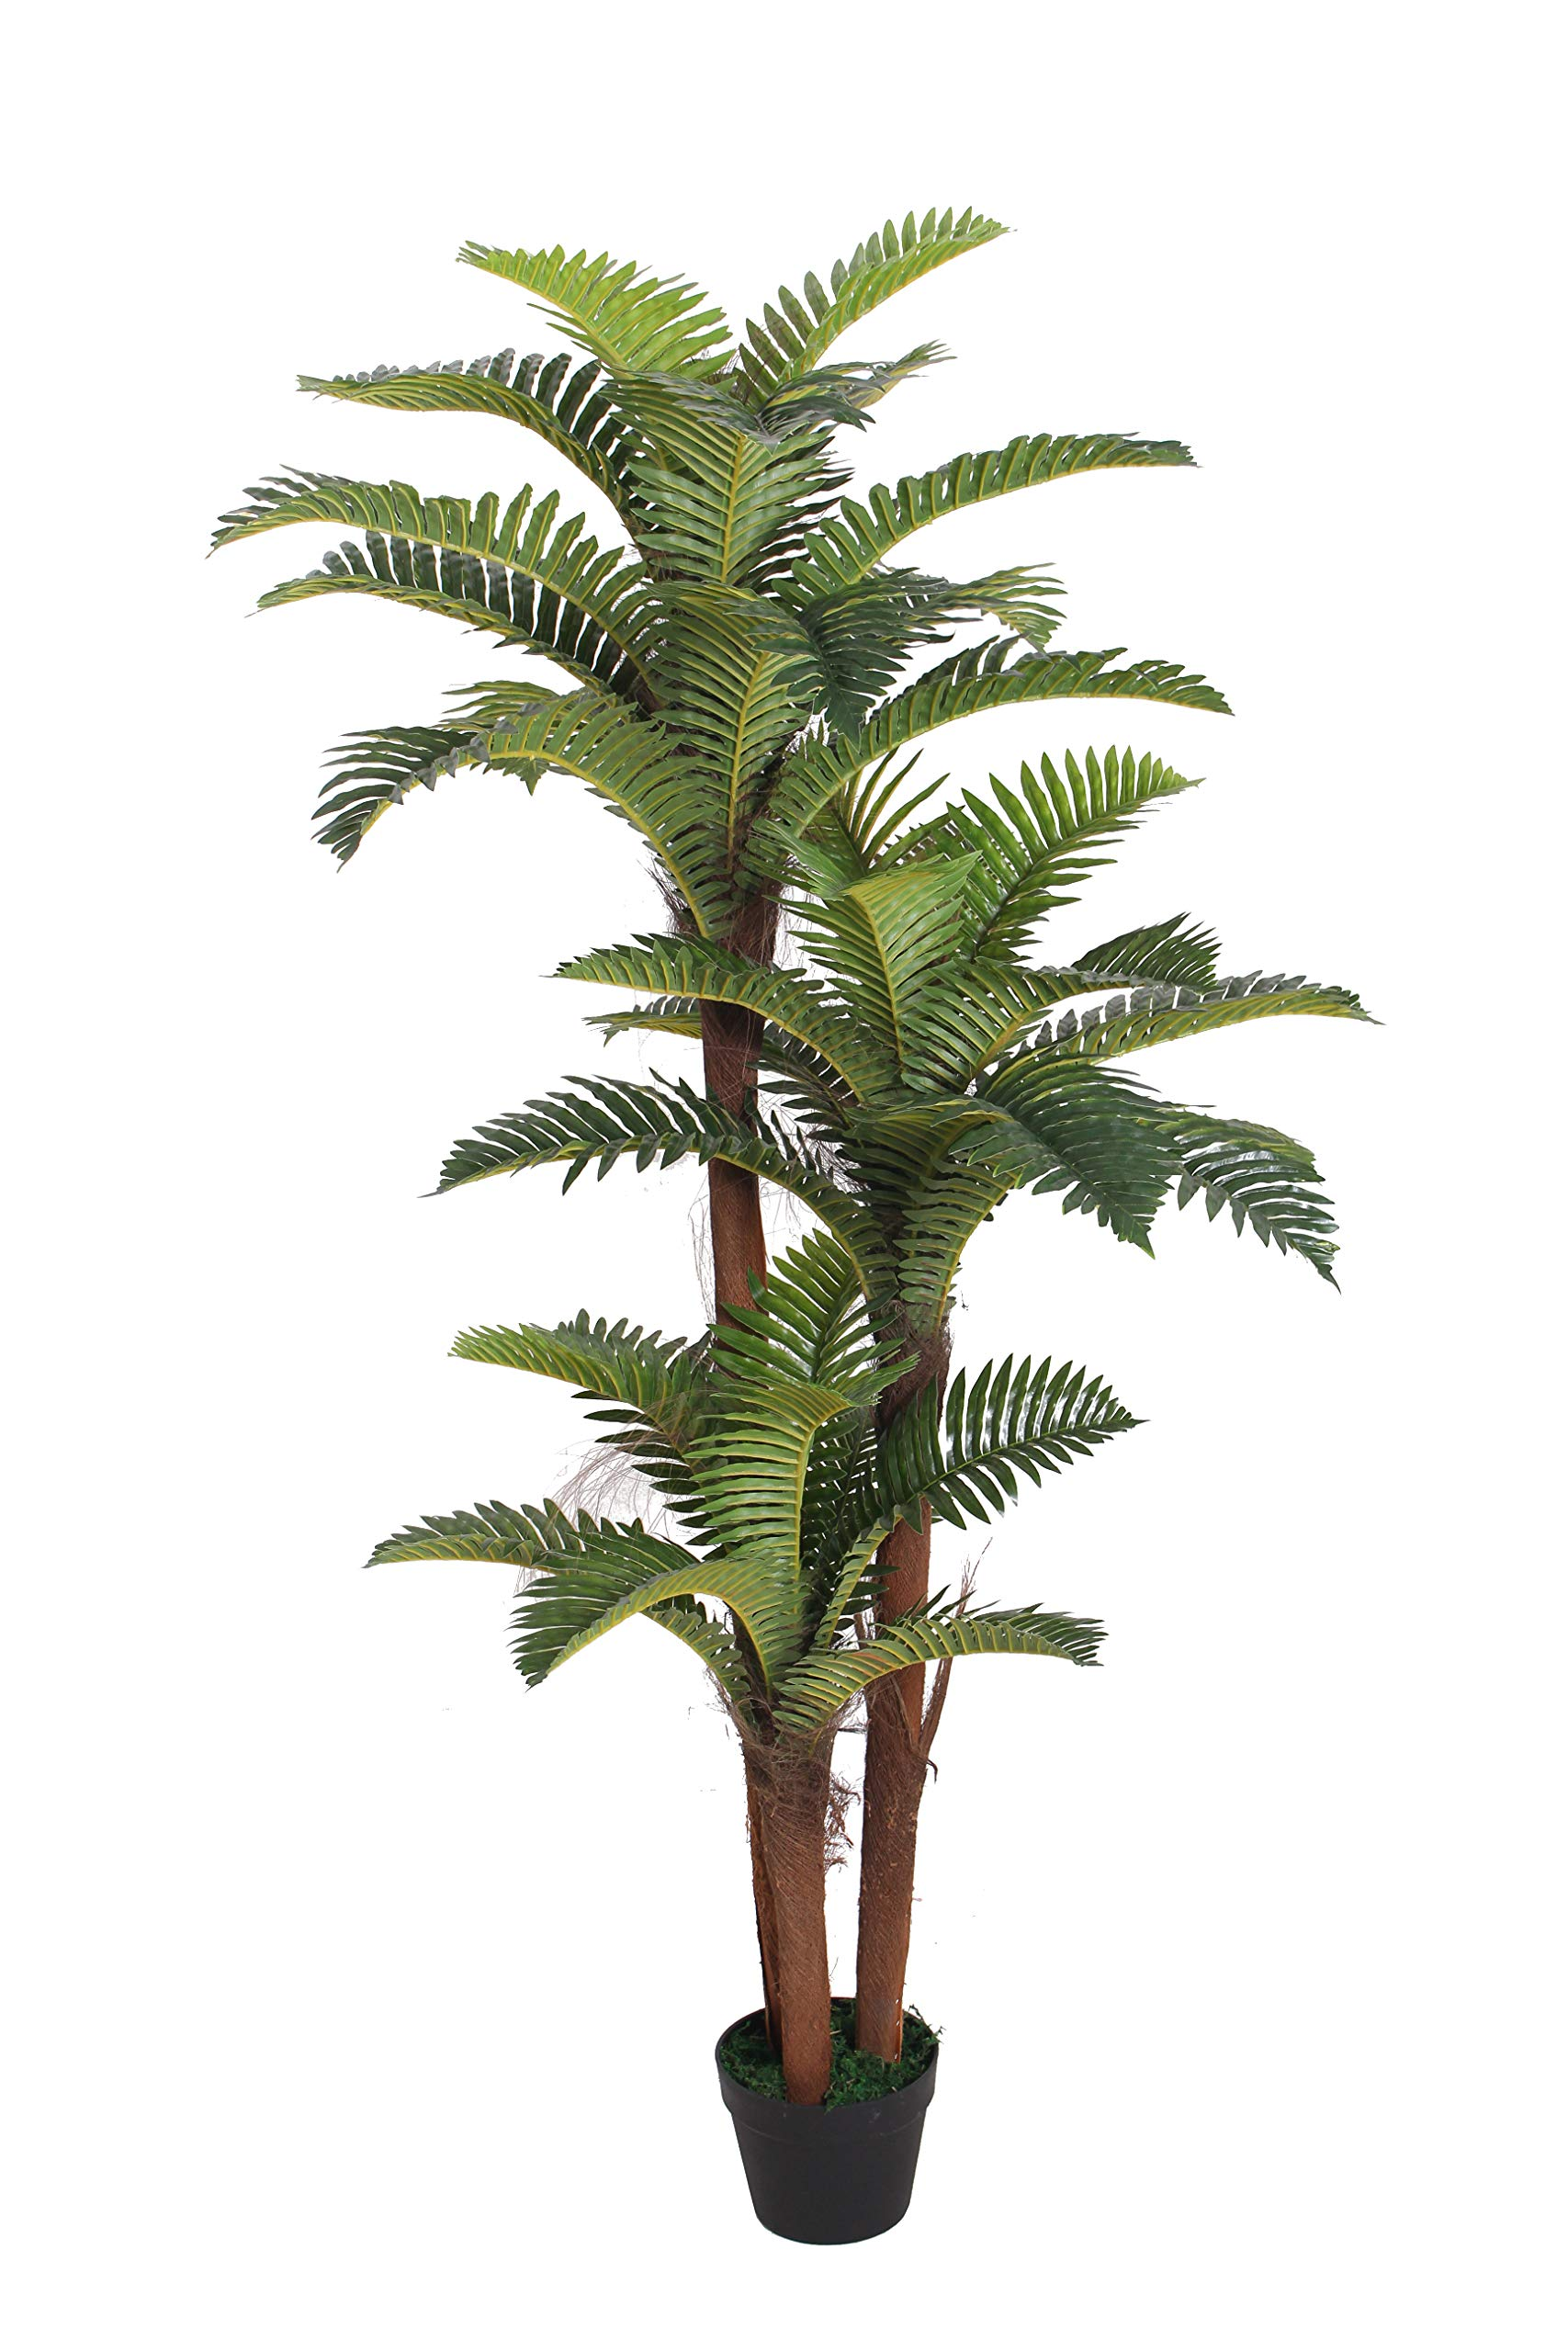 AMERIQUE-Gorgeous-5-Feet-Boston-Fern-Tree-Artificial-Silk-Plant-with-UV-Protection-Pre-Nursery-Pot-Feel-Real-Technology-Super-Quality-Green